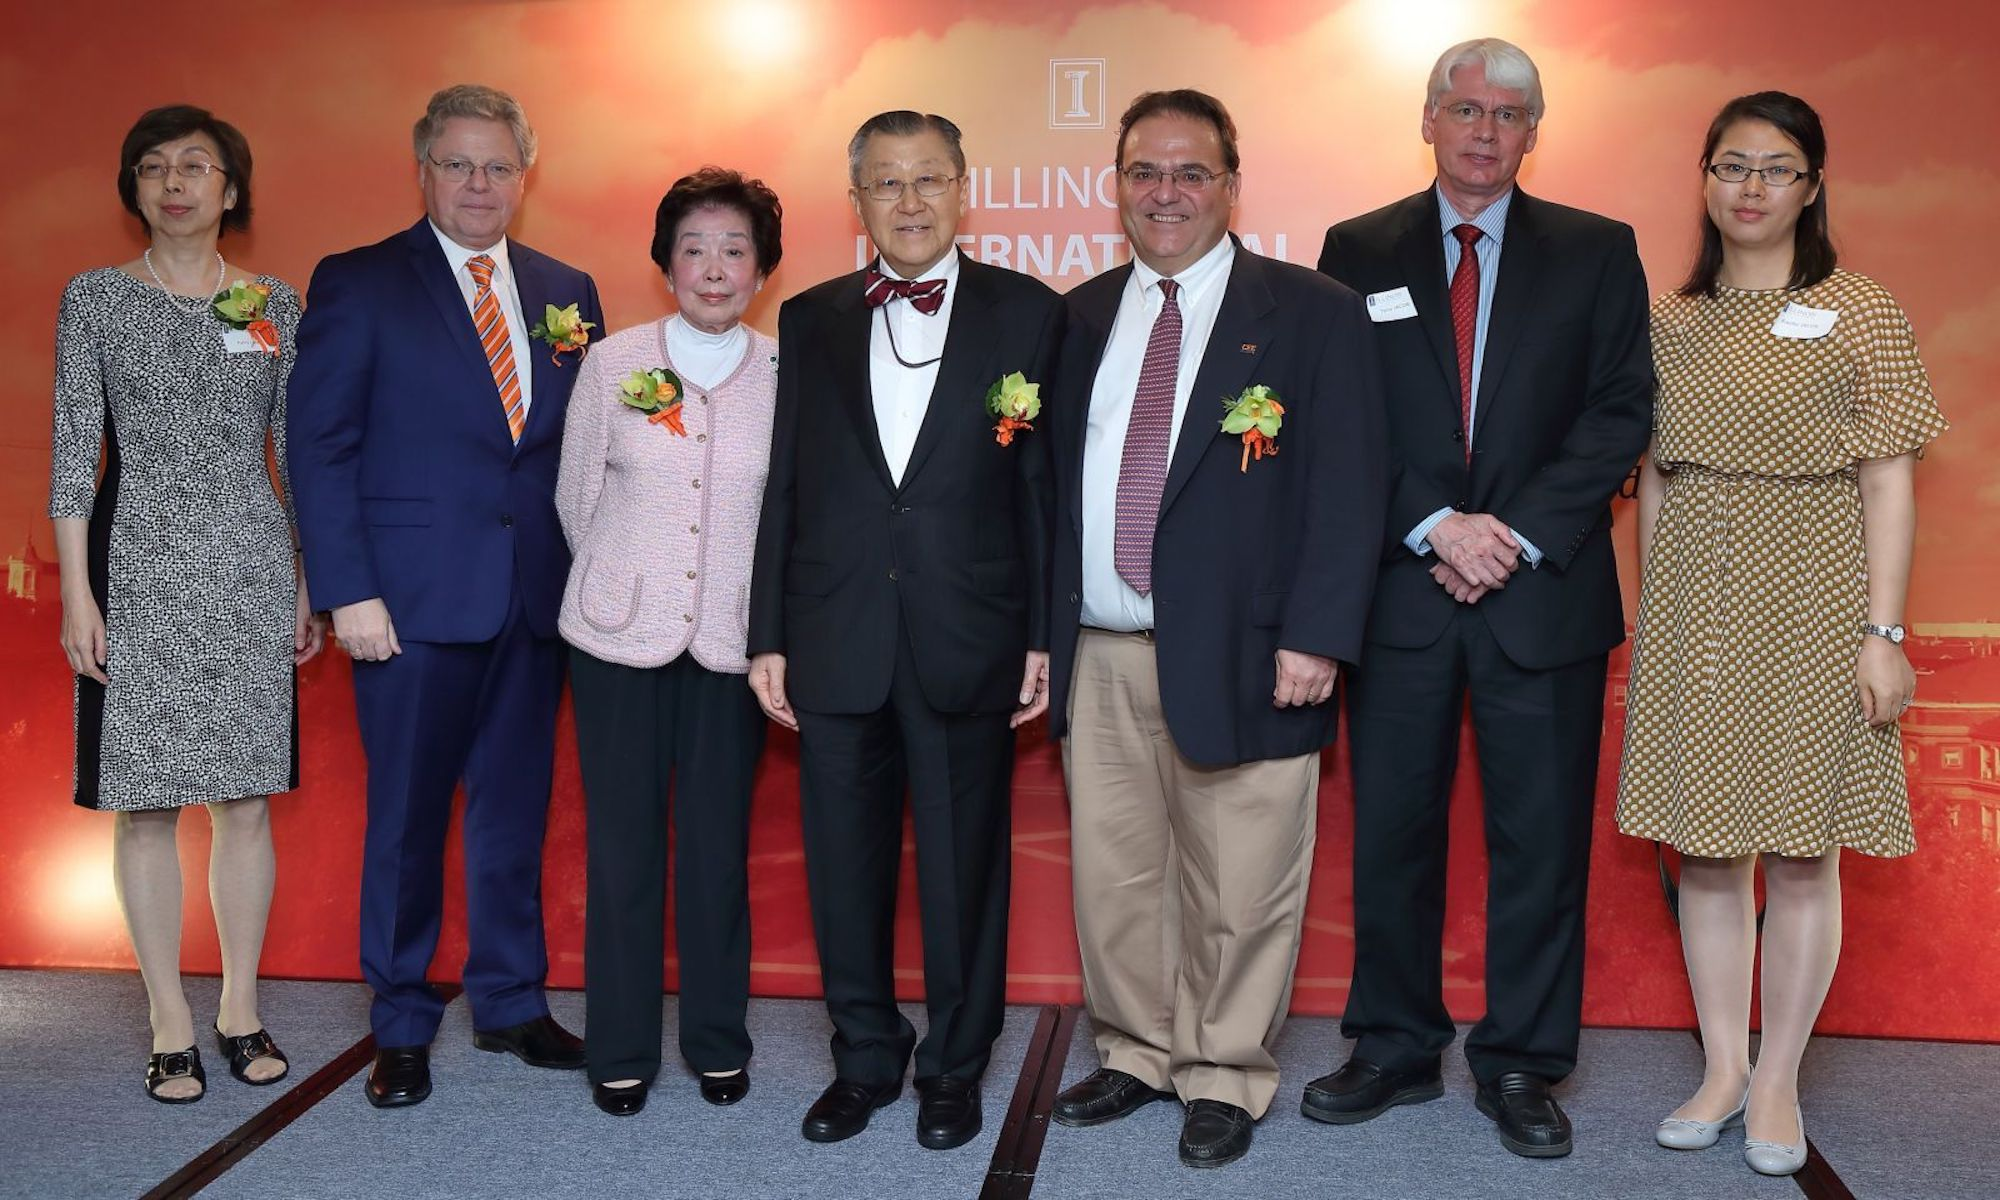 Dr. Yeh Presented with International Alumni Award for Exceptional Achievement